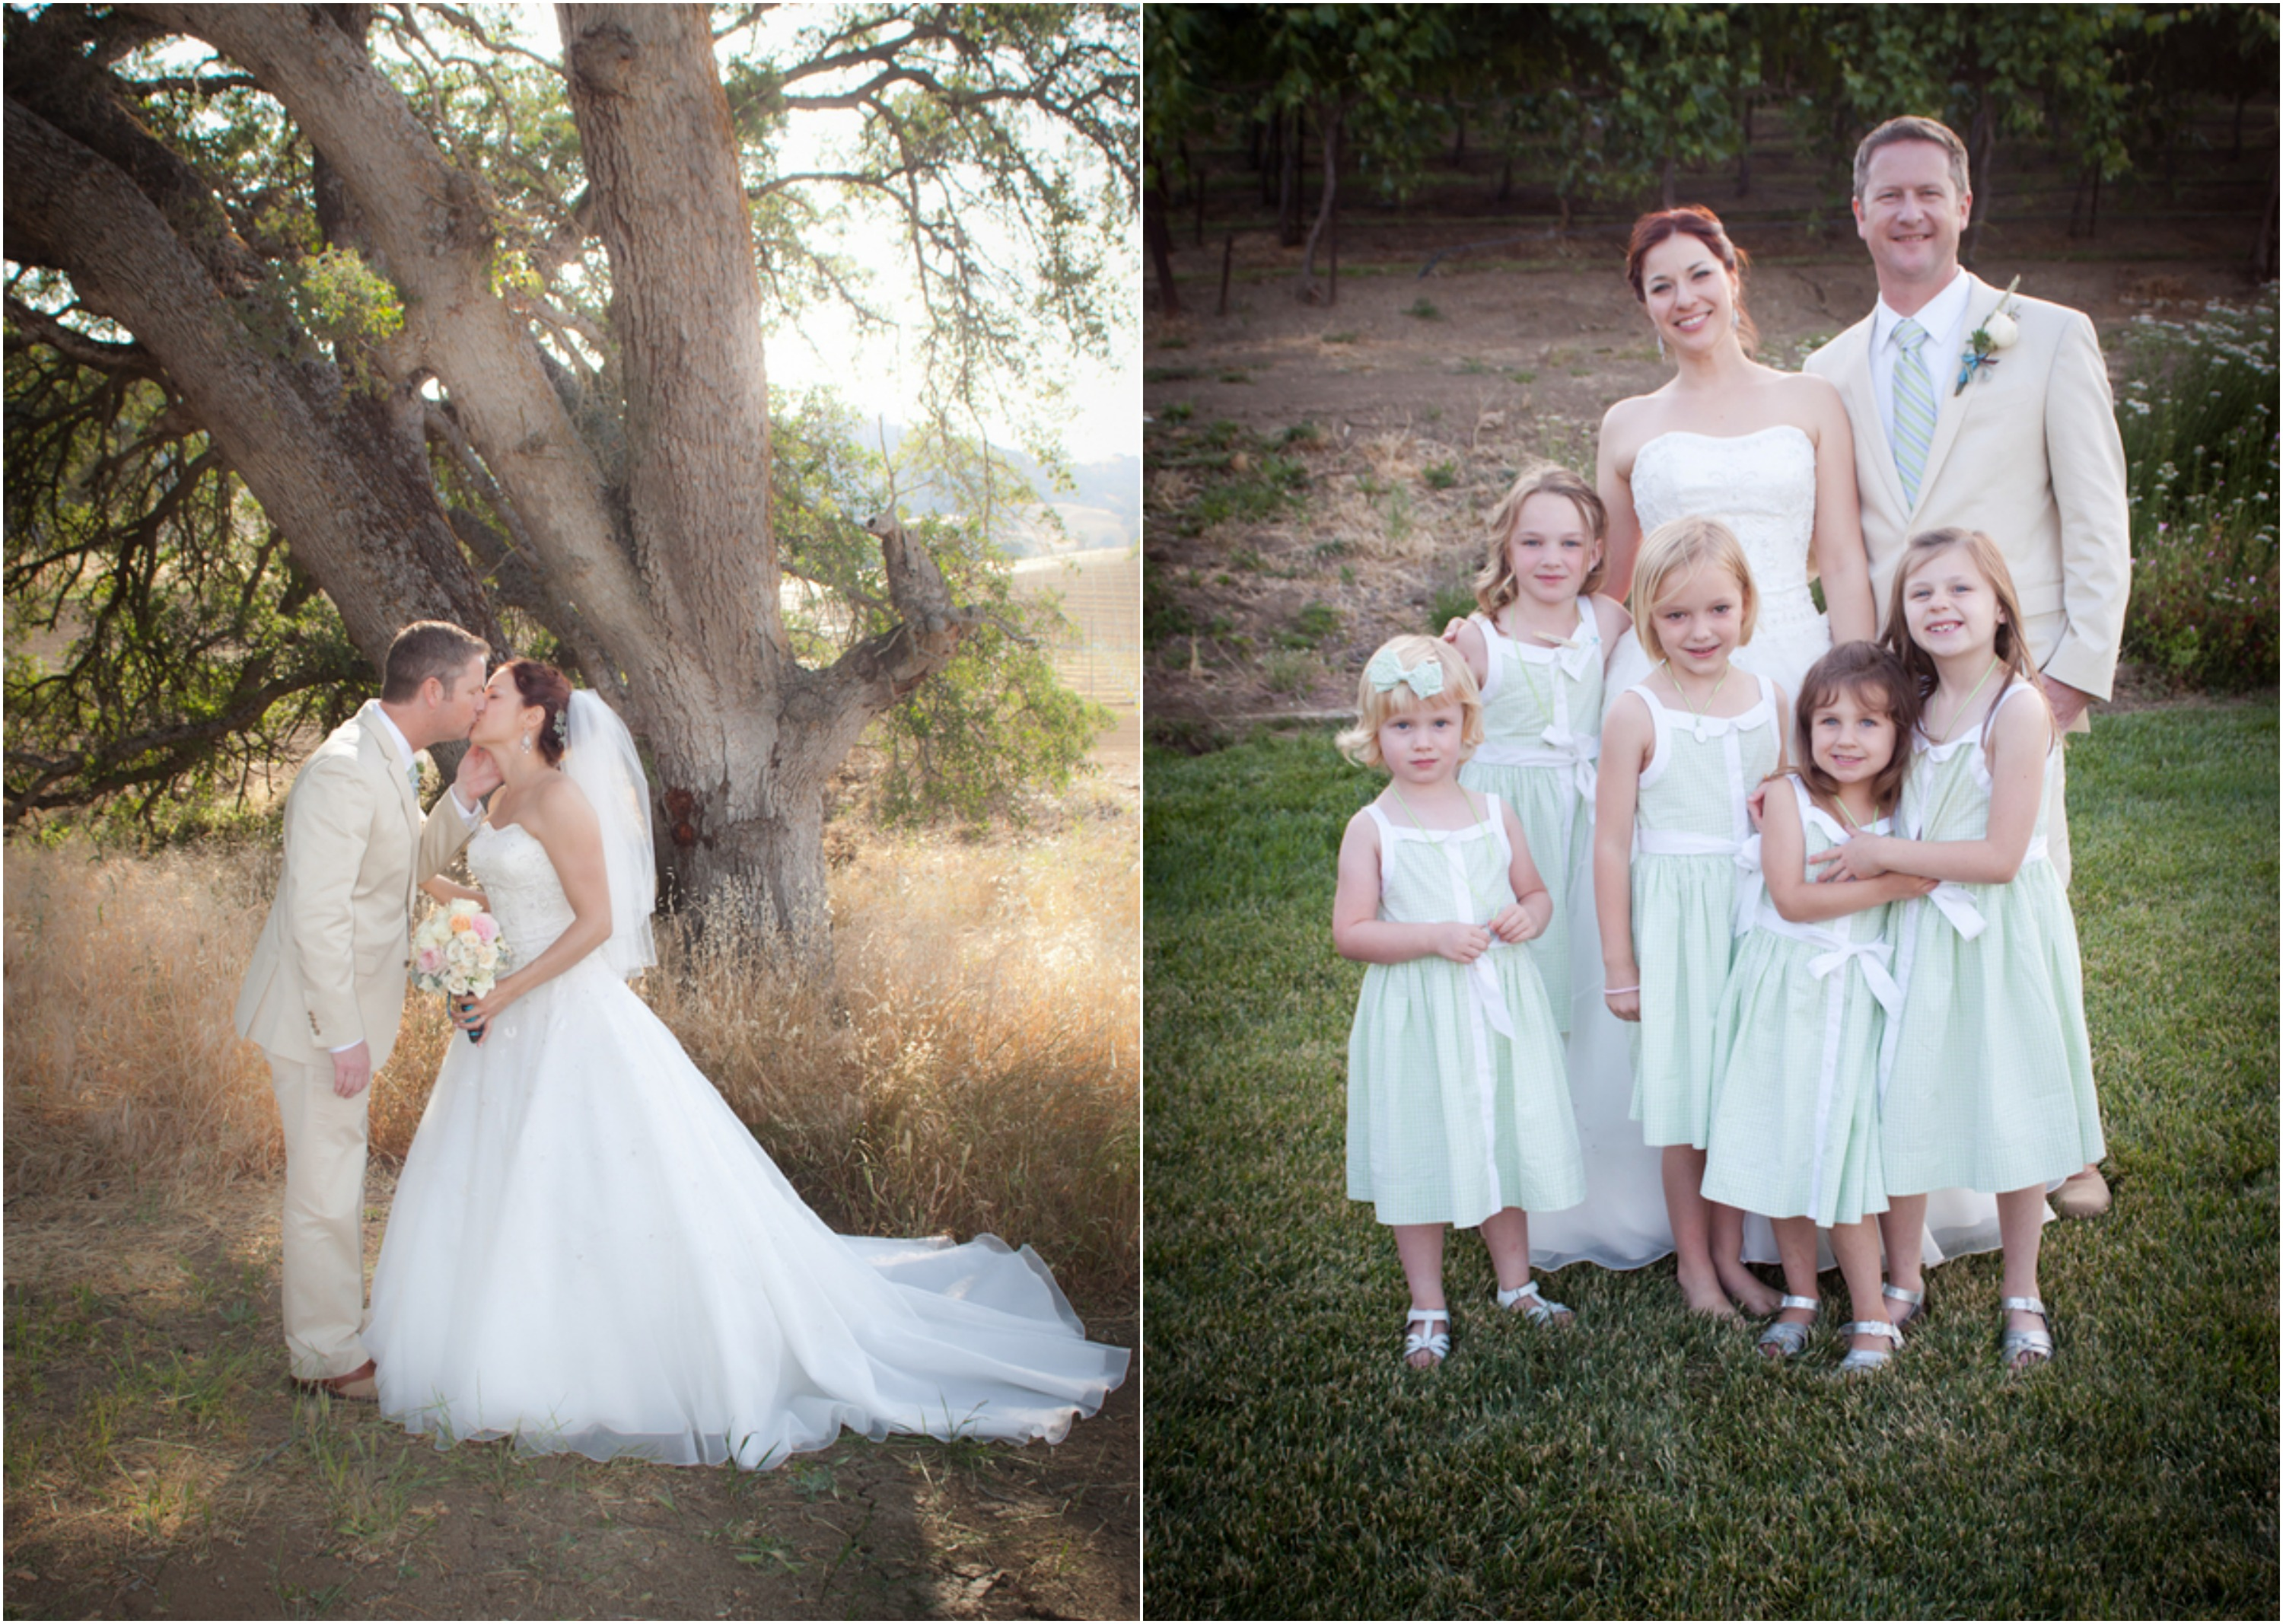 California Country Chic Wedding At Taber Ranch - Rustic ... - photo#9